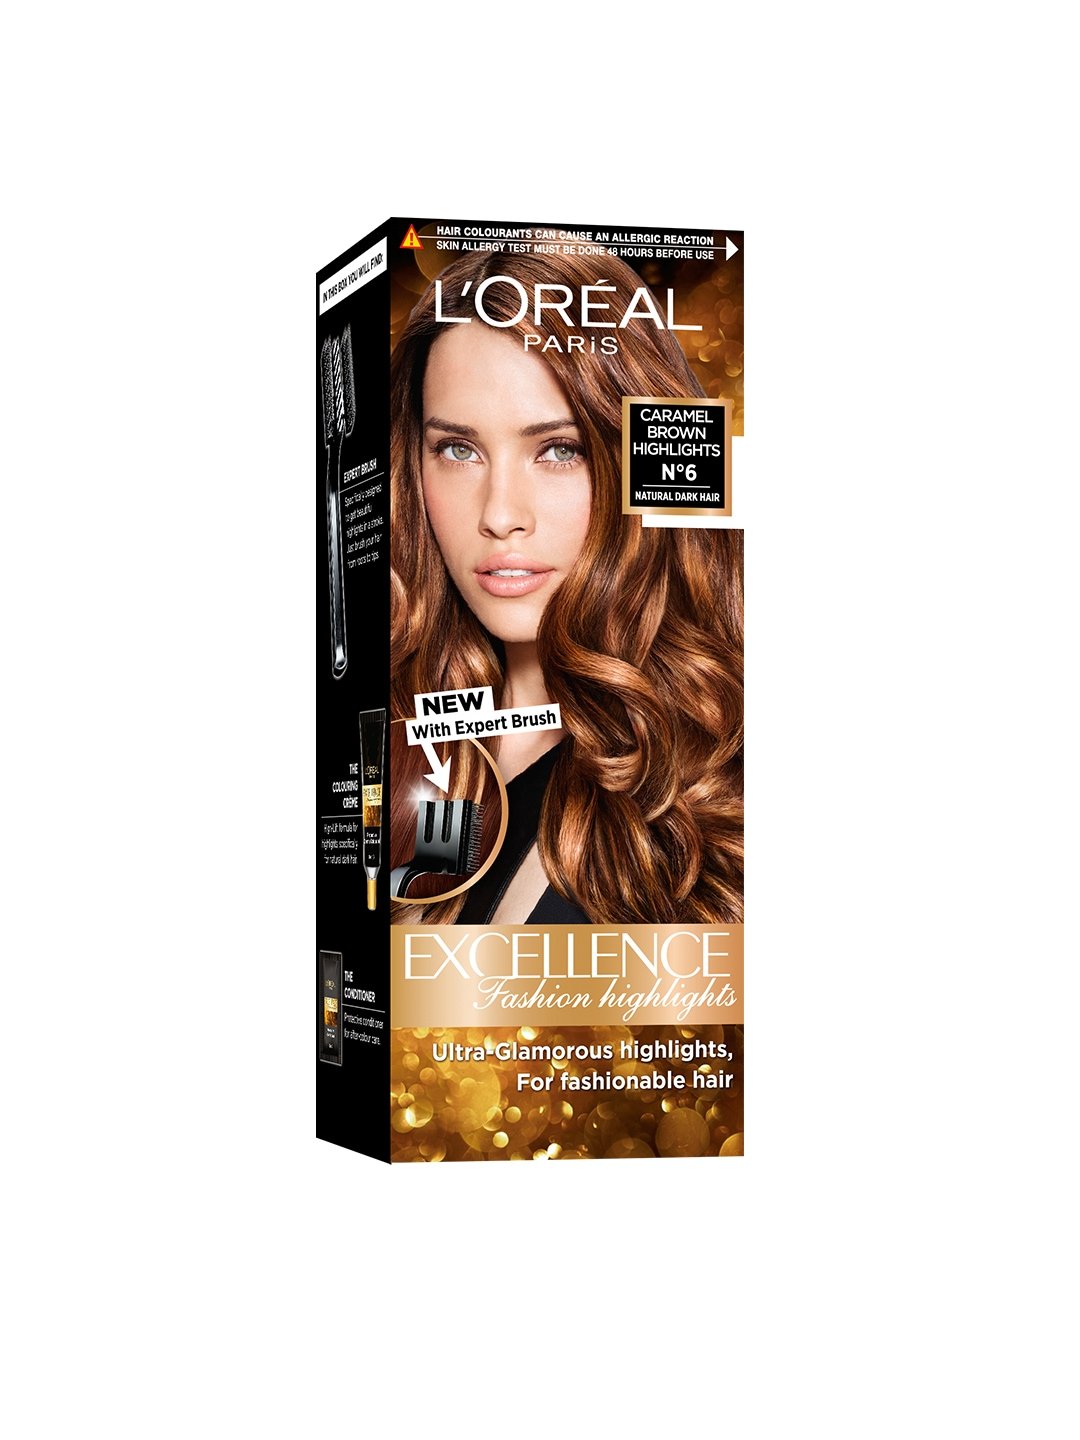 Loreal Excellence Fashion Highlights Caramel Brown Hair Color image